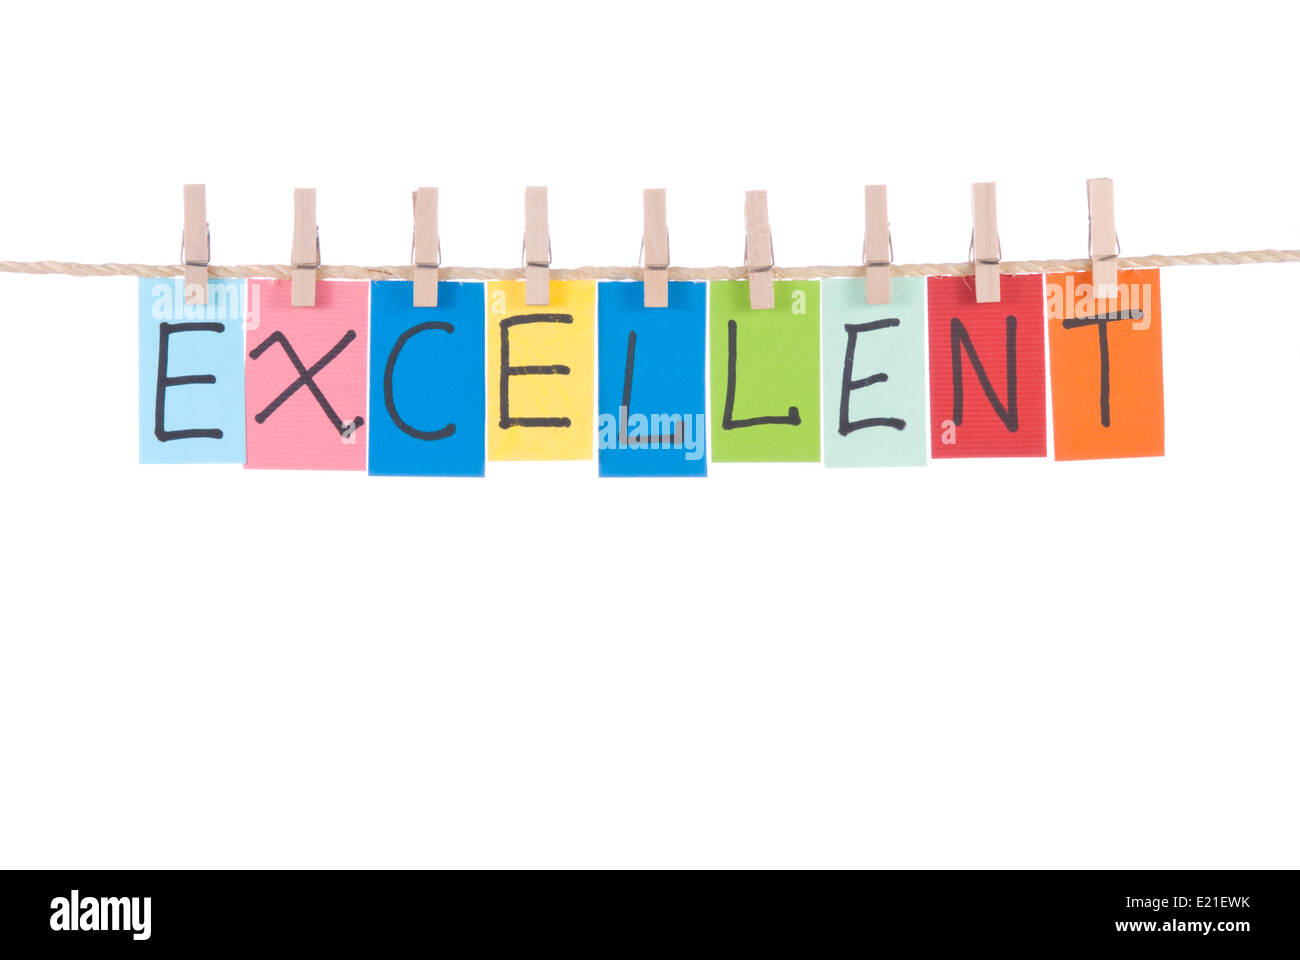 Excellent, words hang by wooden peg - Stock Image